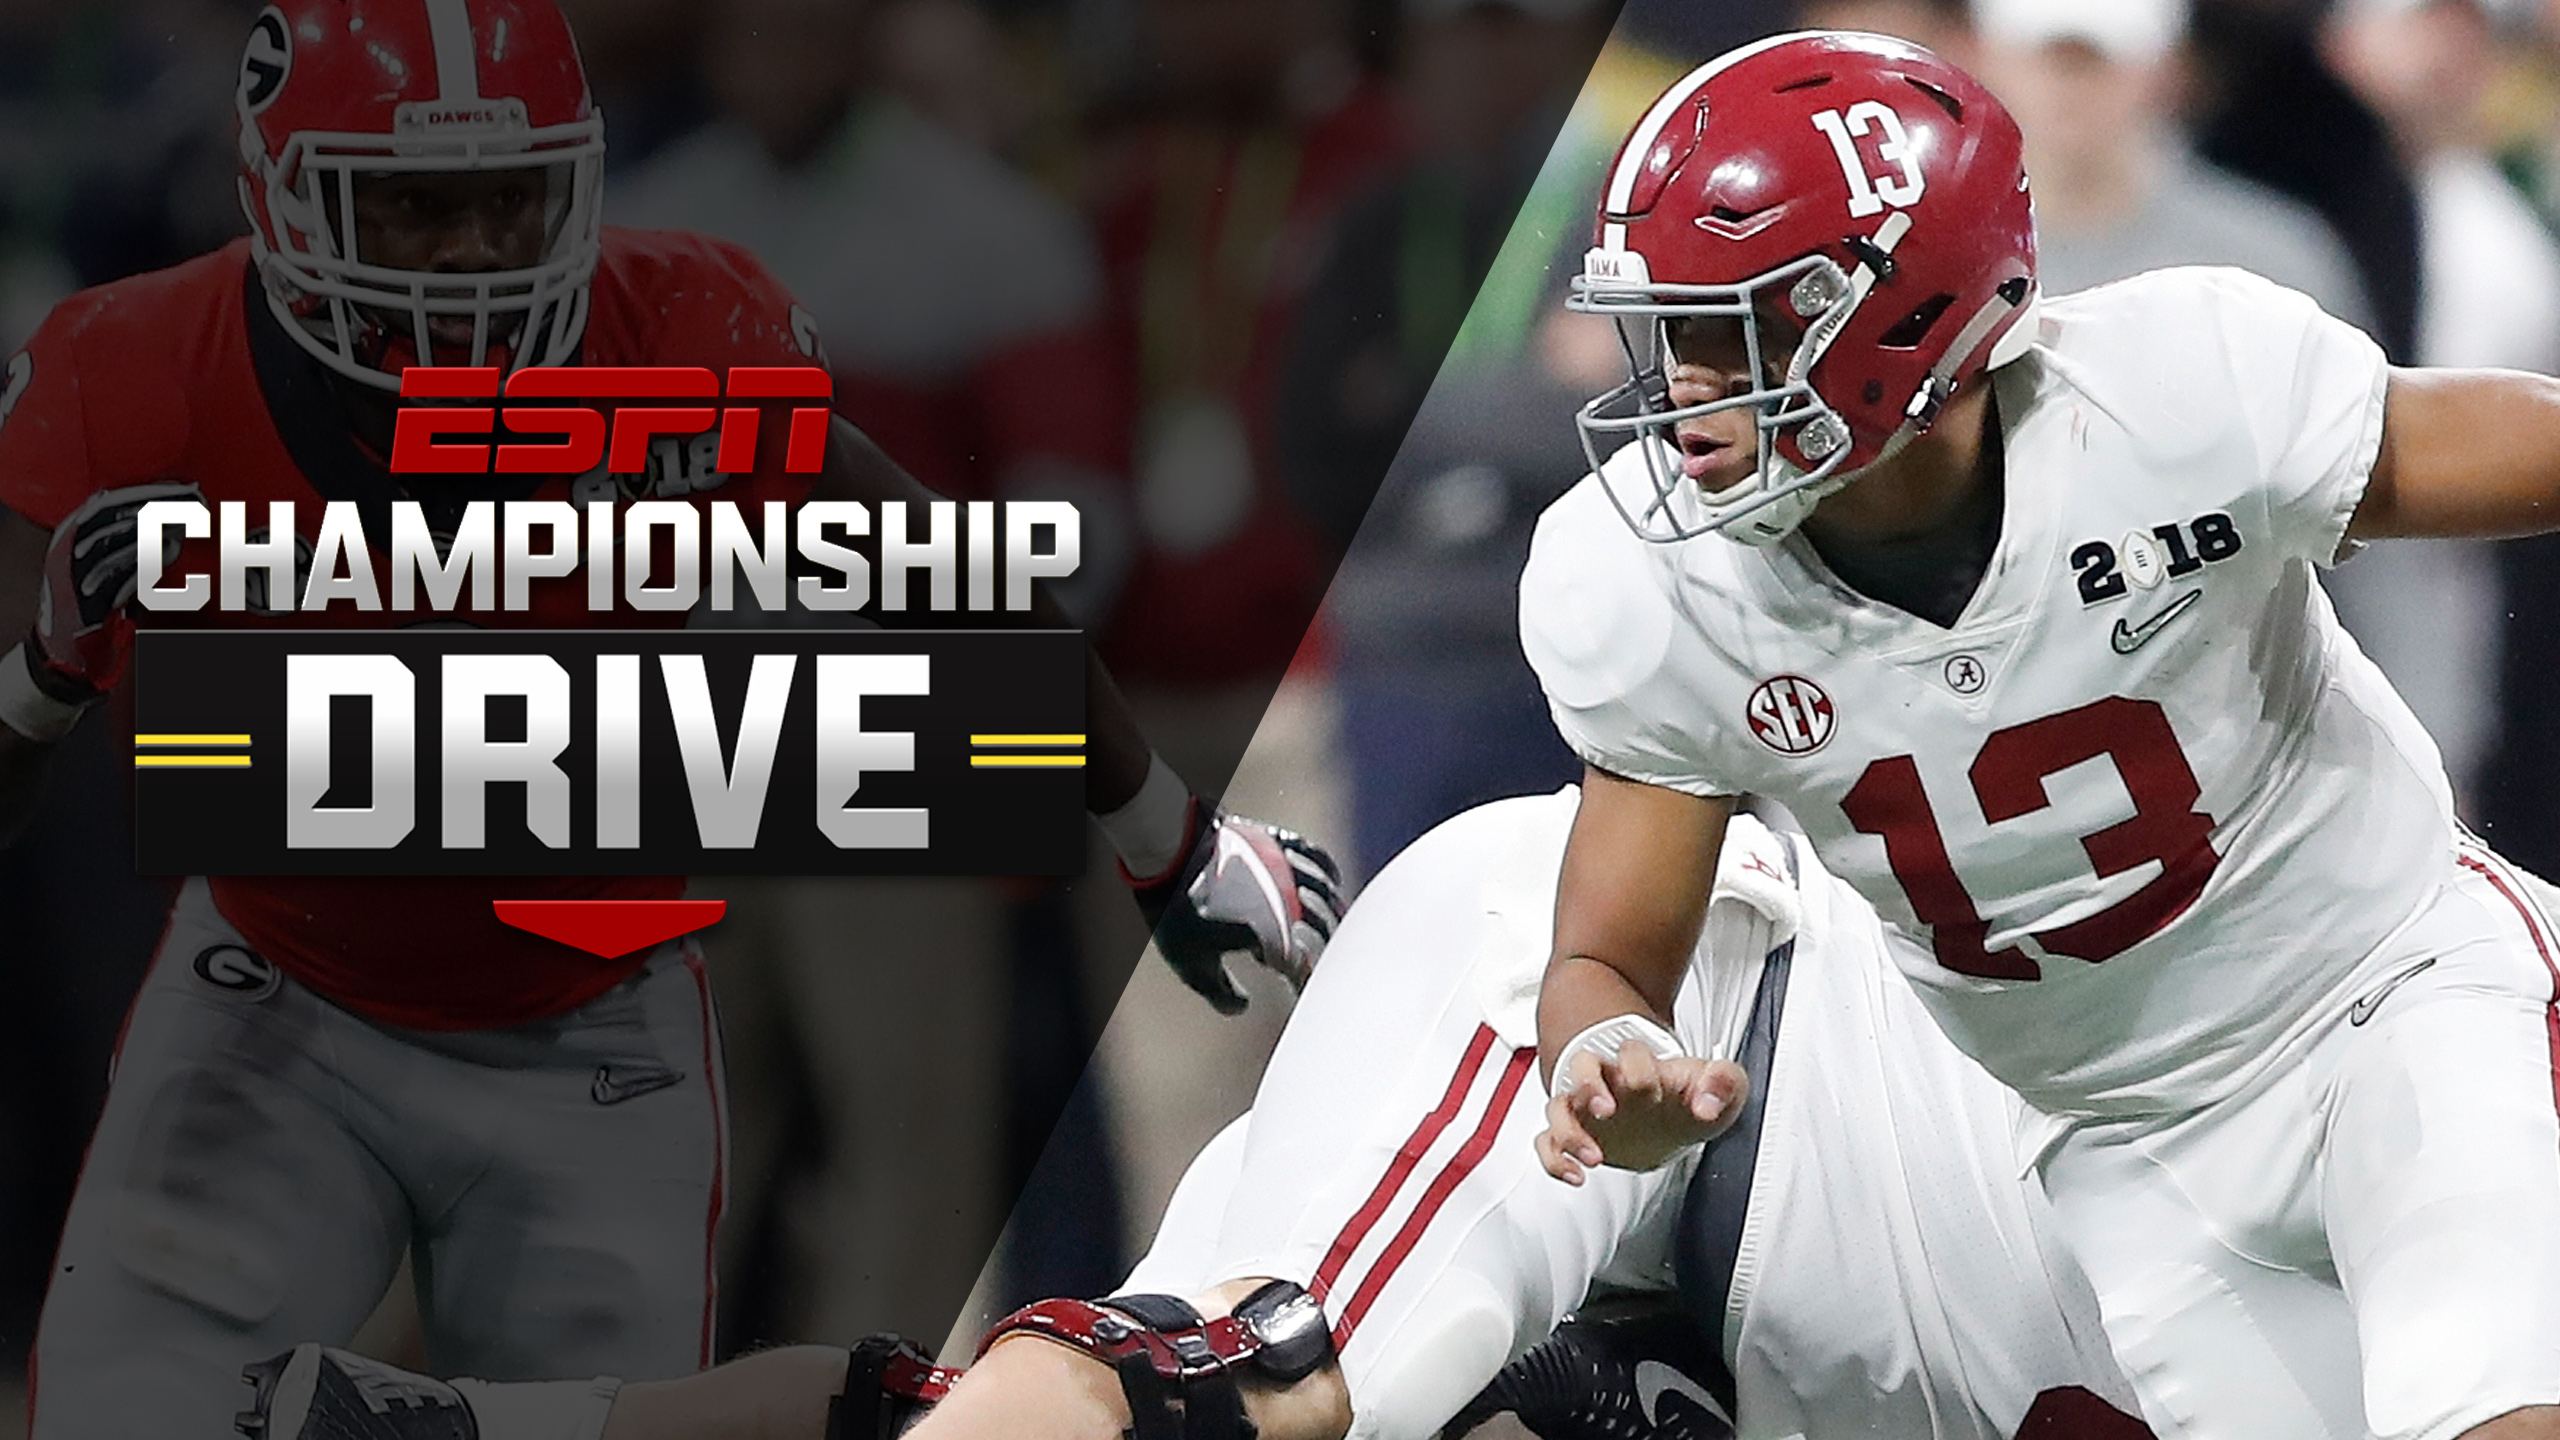 Championship Drive: Path to the Playoff Presented by AT&T